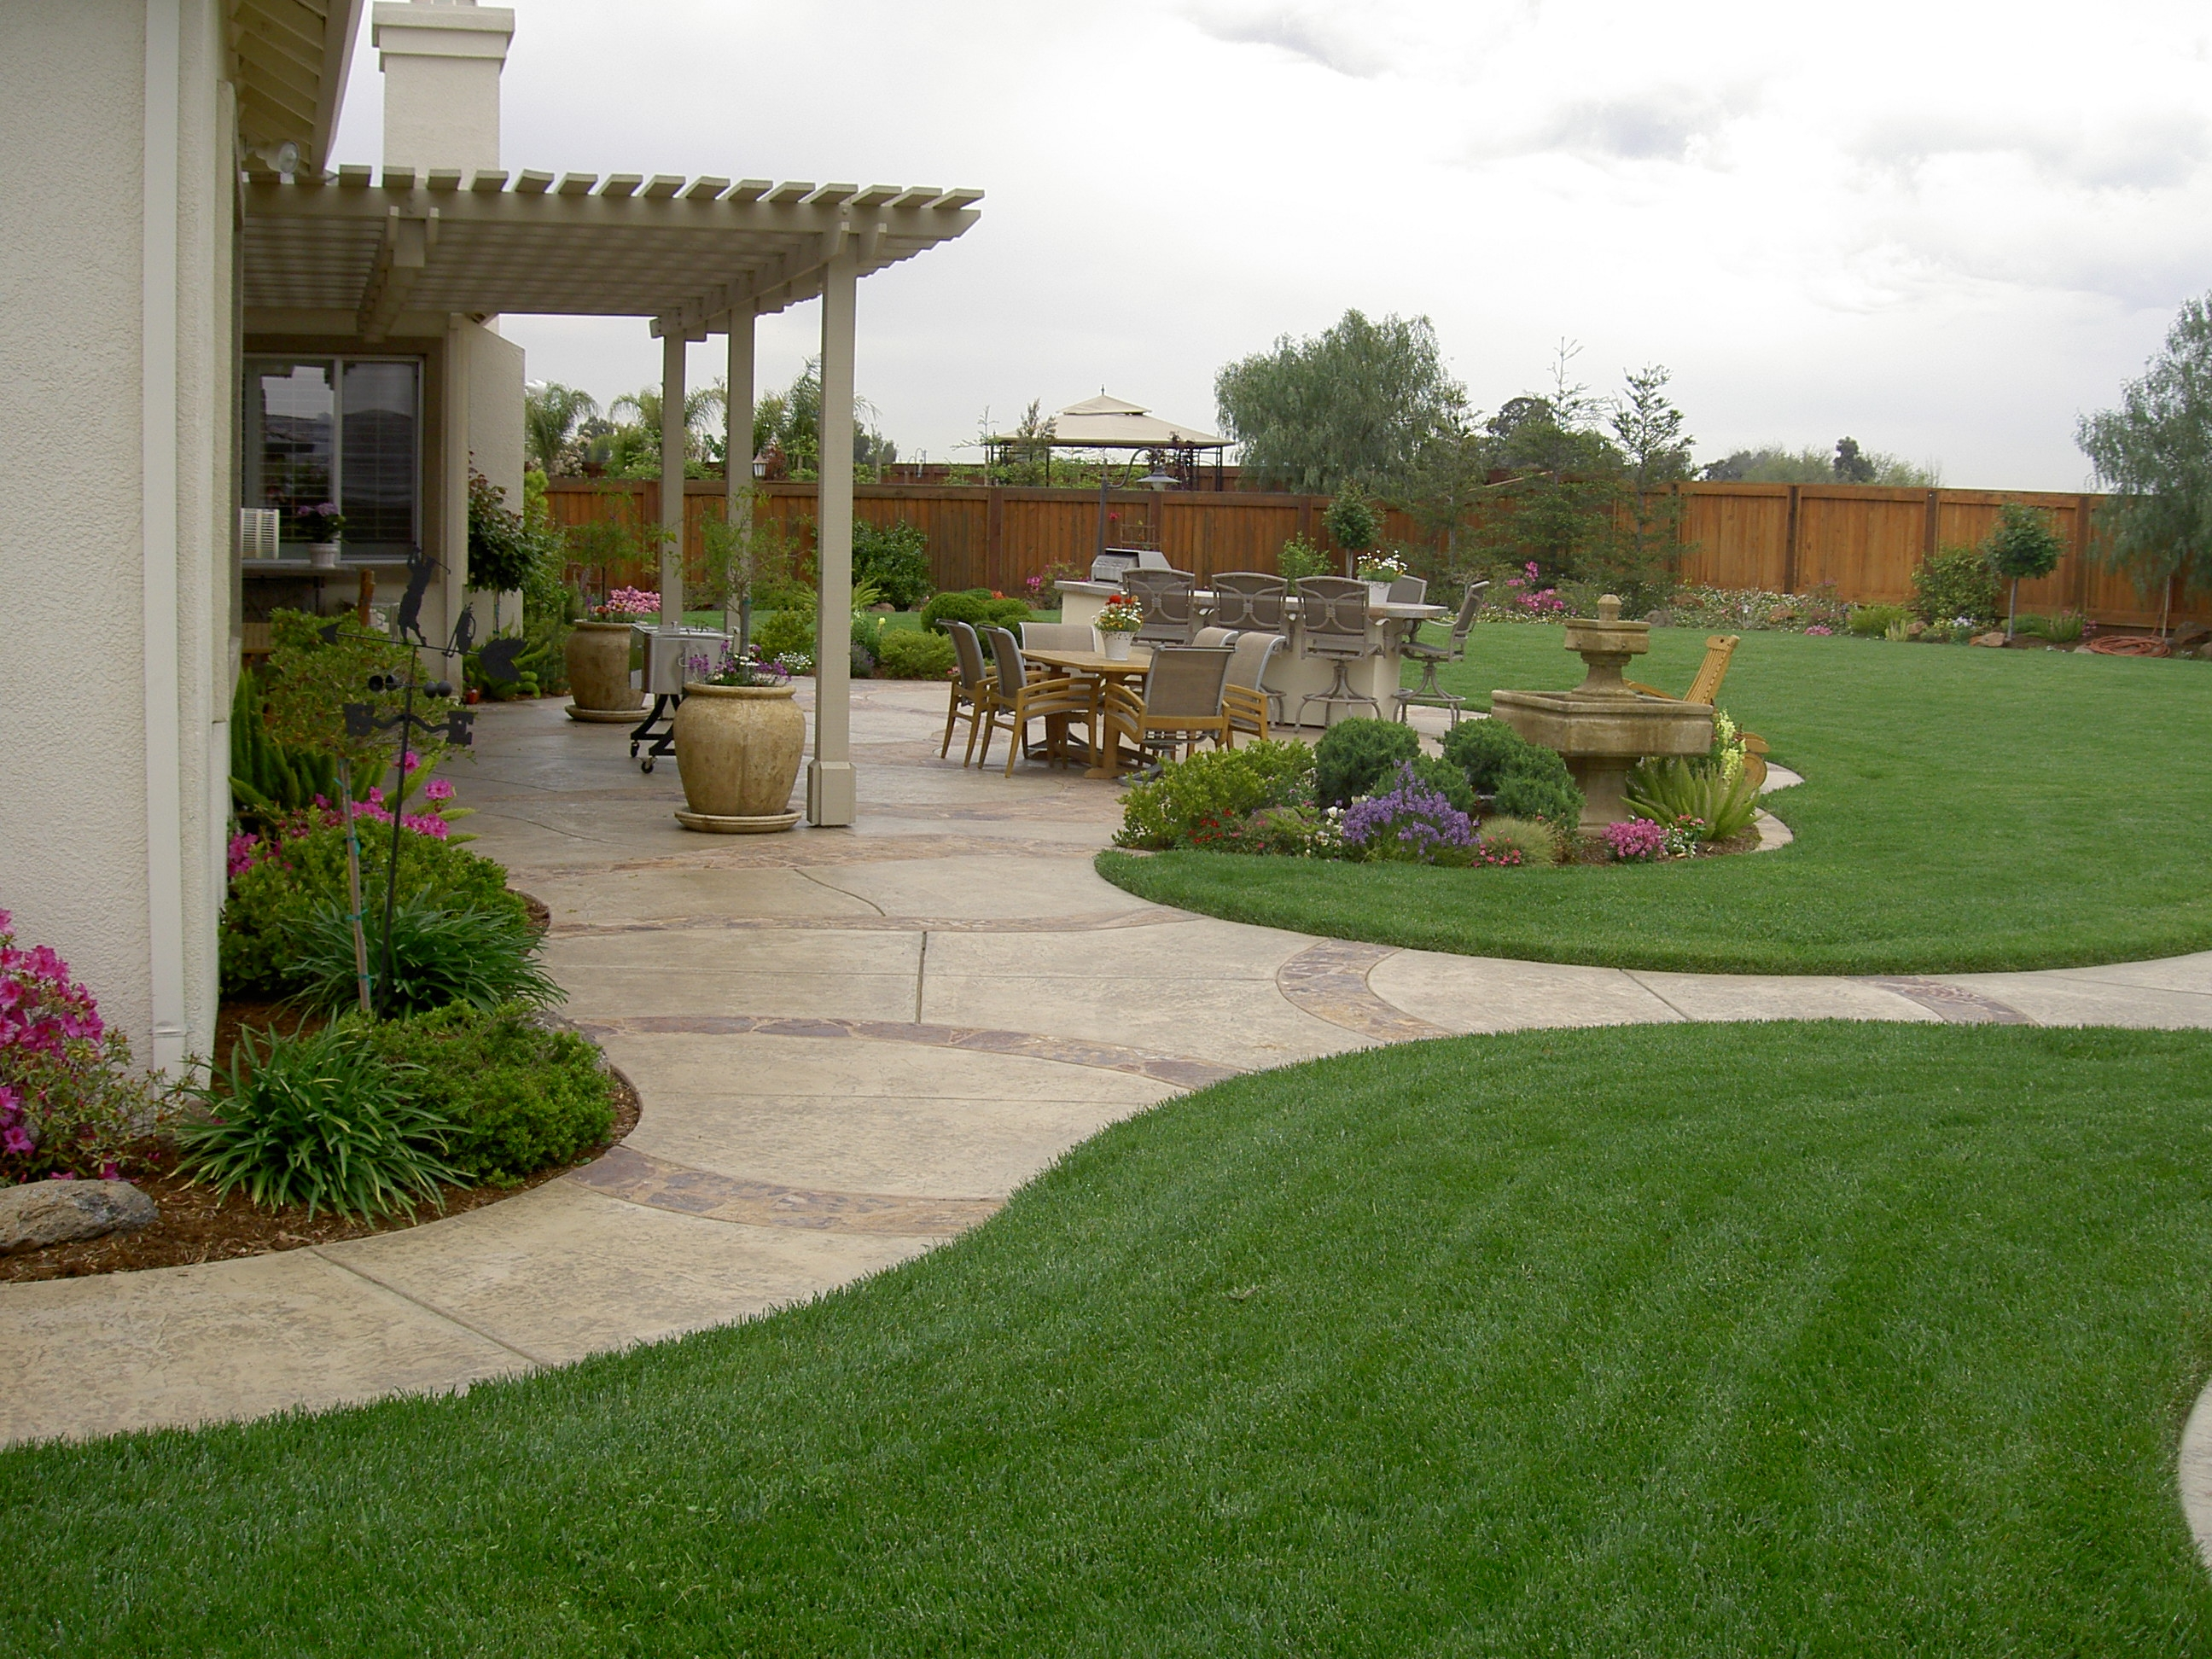 Backyard Landscaping Design Ideas an garden design landscaping design ideas for backyard Backyard Design Online Garden Design With Garden Landscaping Ideas And Creative Backyard Designs With Front Yard